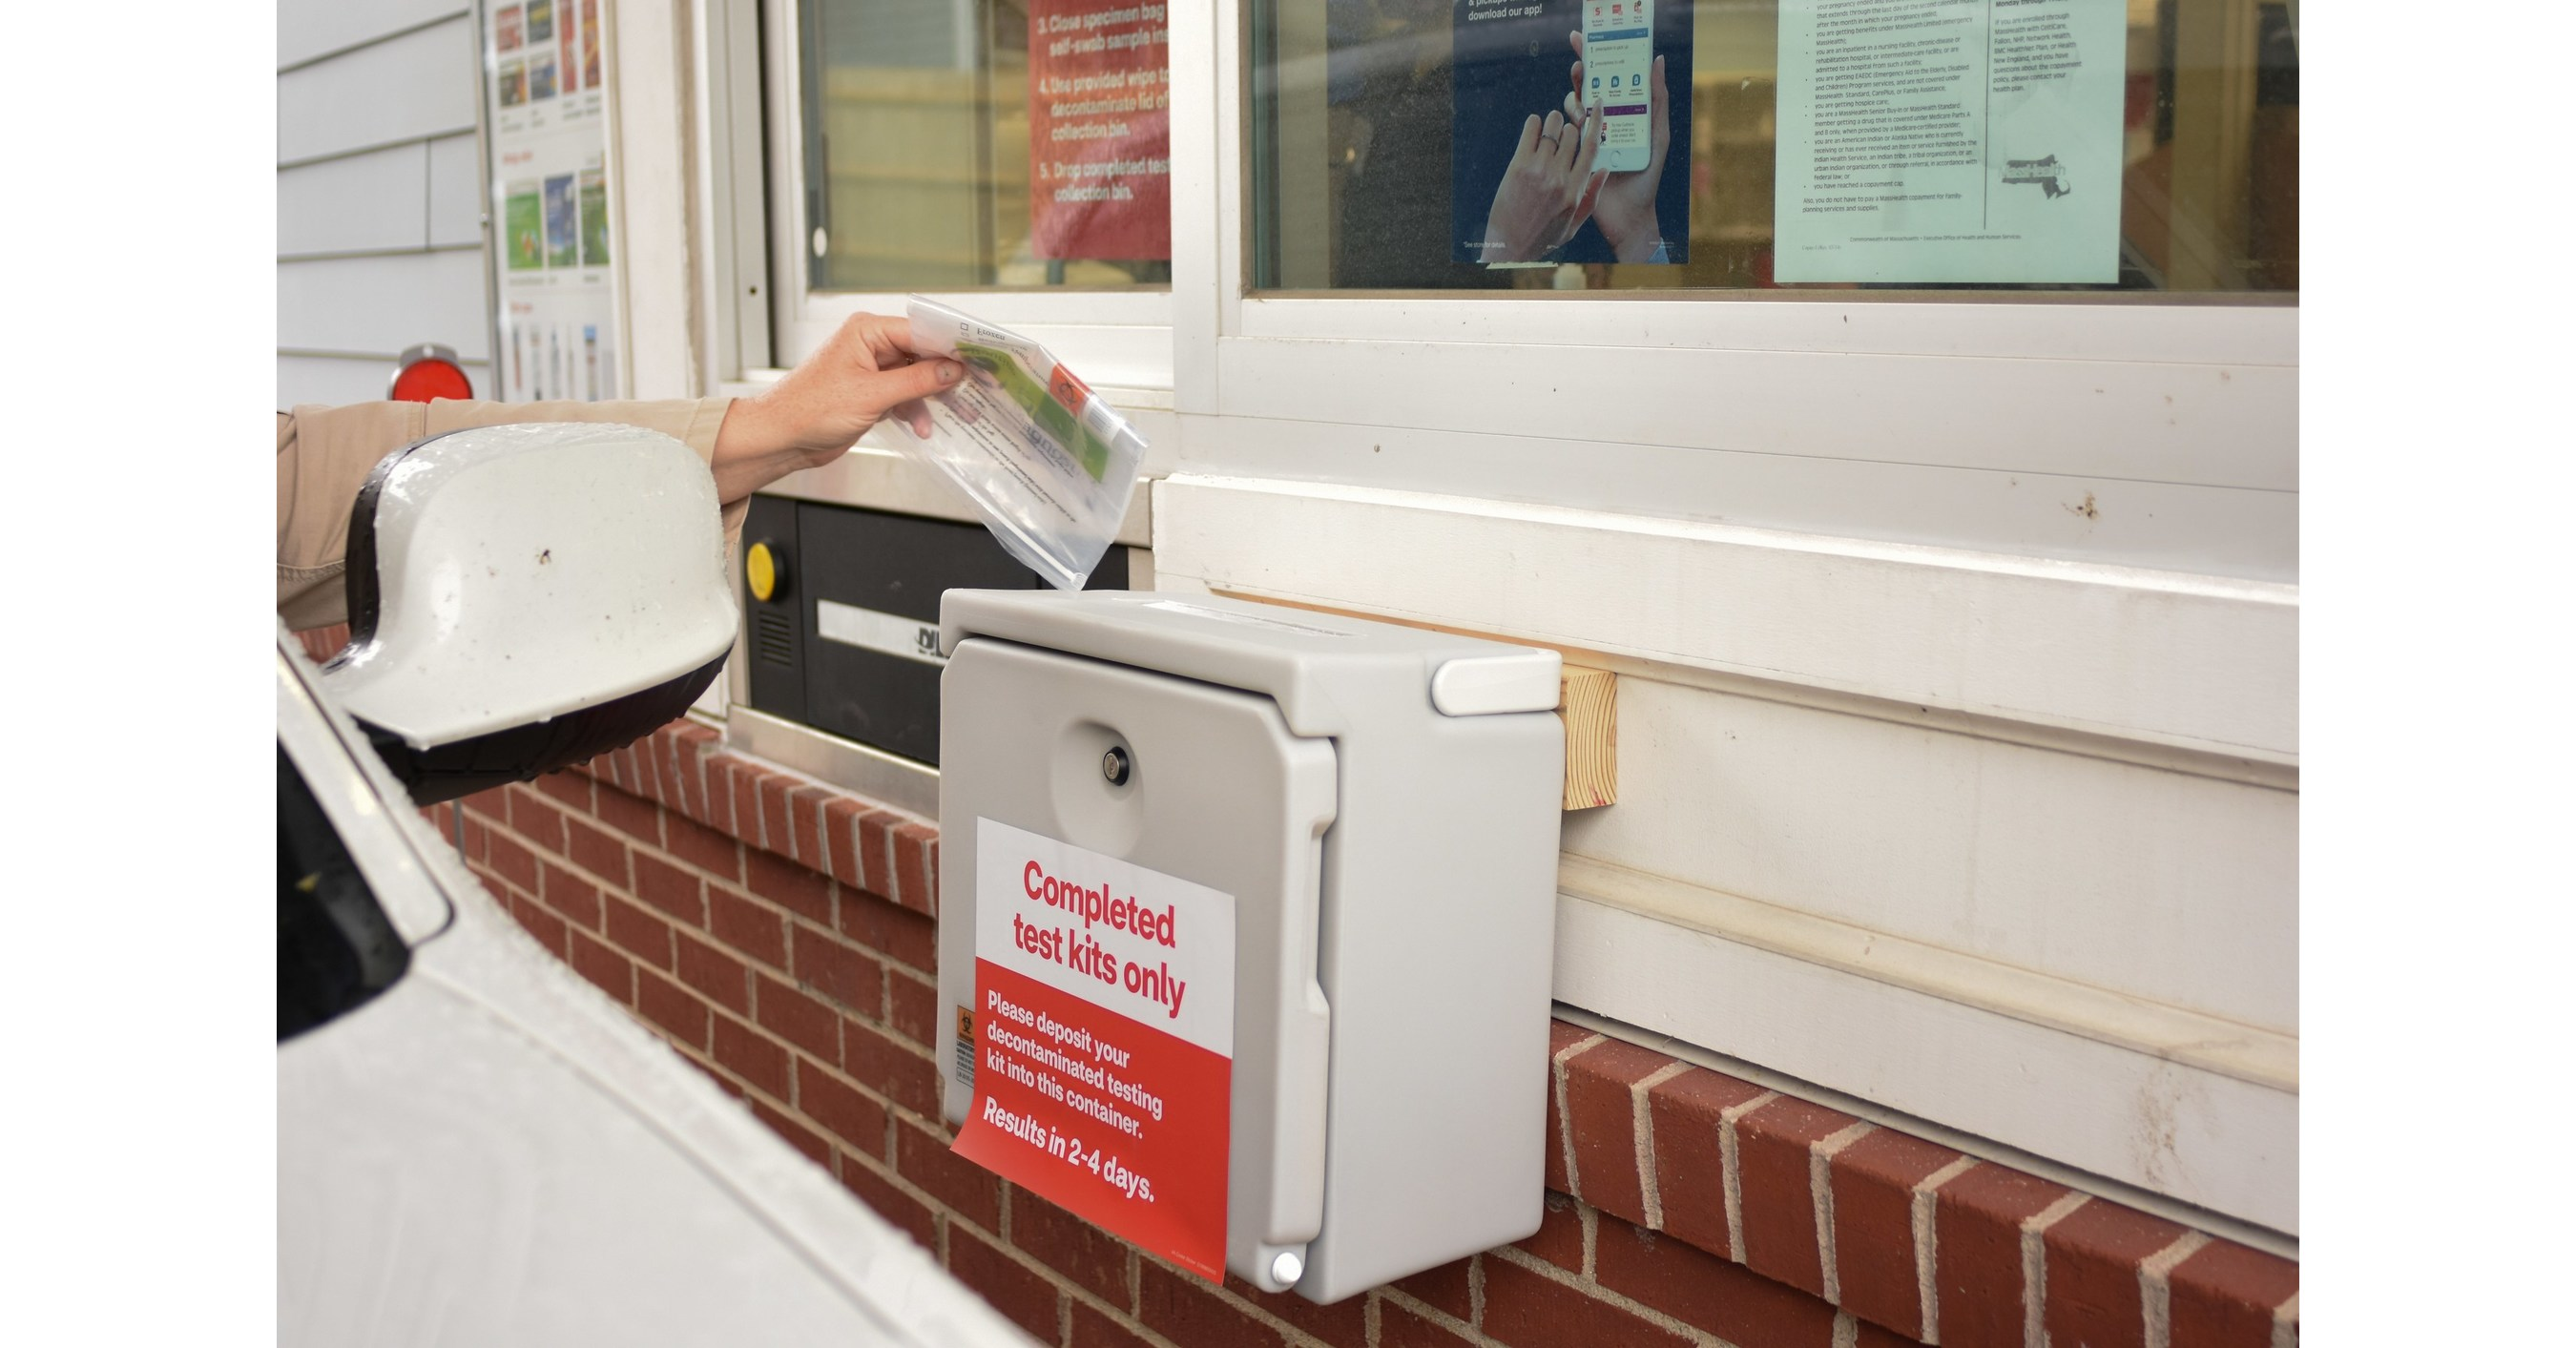 Cvs Health Expands Statewide Covid 19 Response By Opening 13 Additional New Drive Thru Test Sites In Connecticut